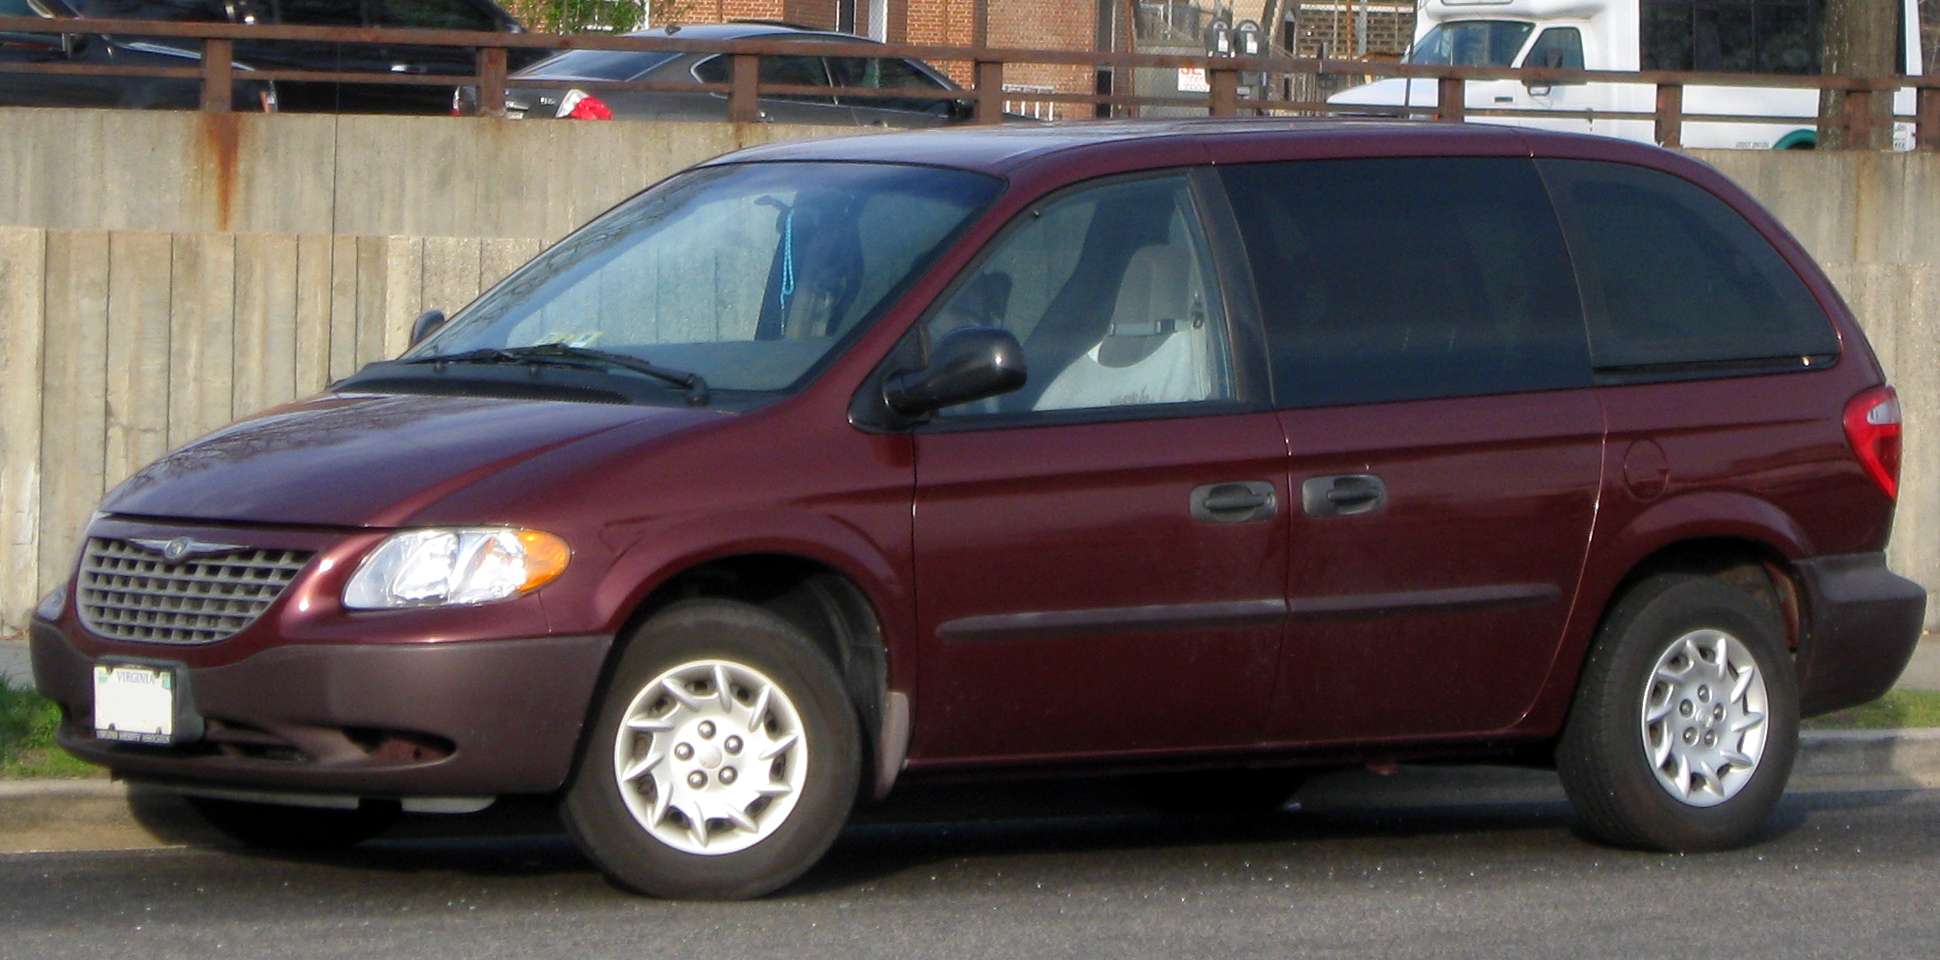 Chrysler Voyager Pictures Information And Specs Tuning Of 11